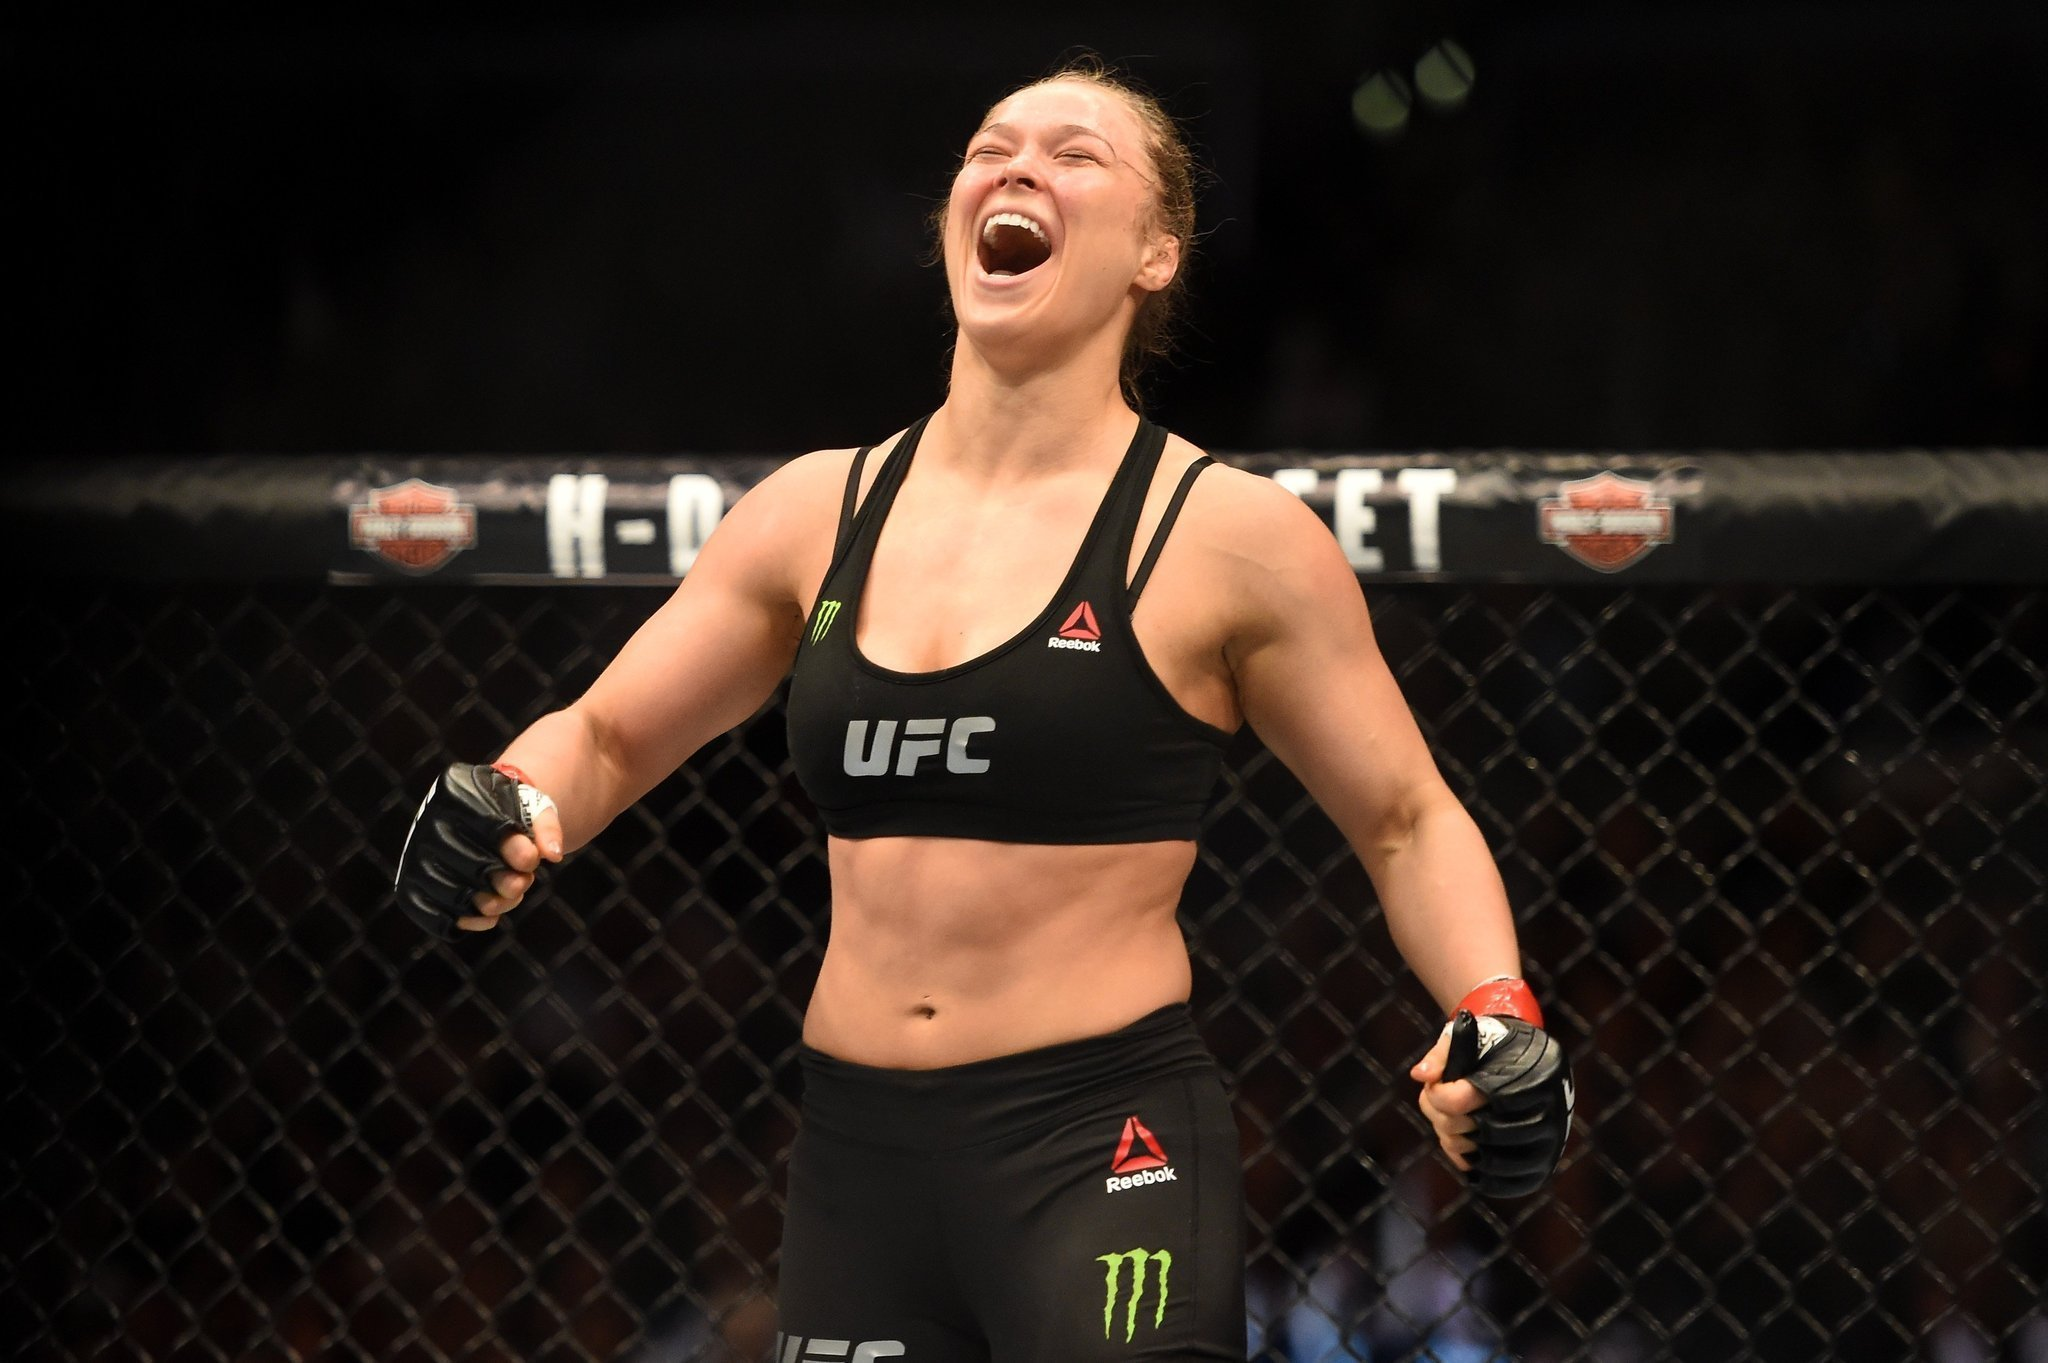 Ronda Rousey makes very fast work of Cat Zingano in UFC title bout